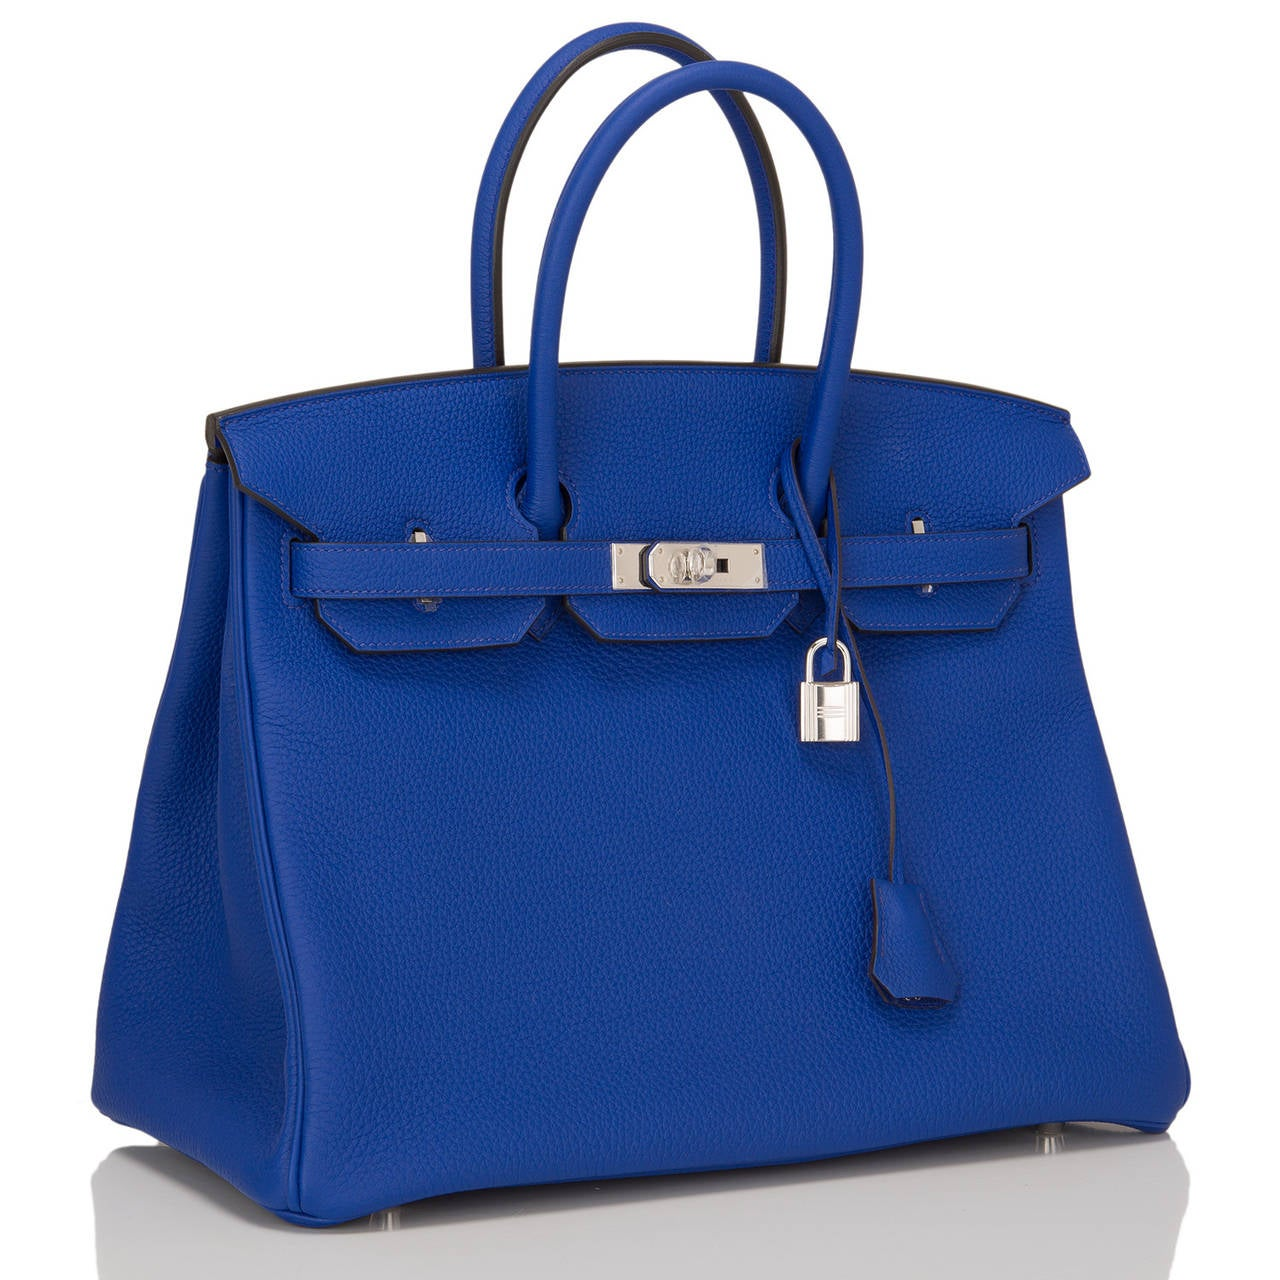 This Hermes Blue Electric 35cm in togo (bull) leather with palladium hardware.